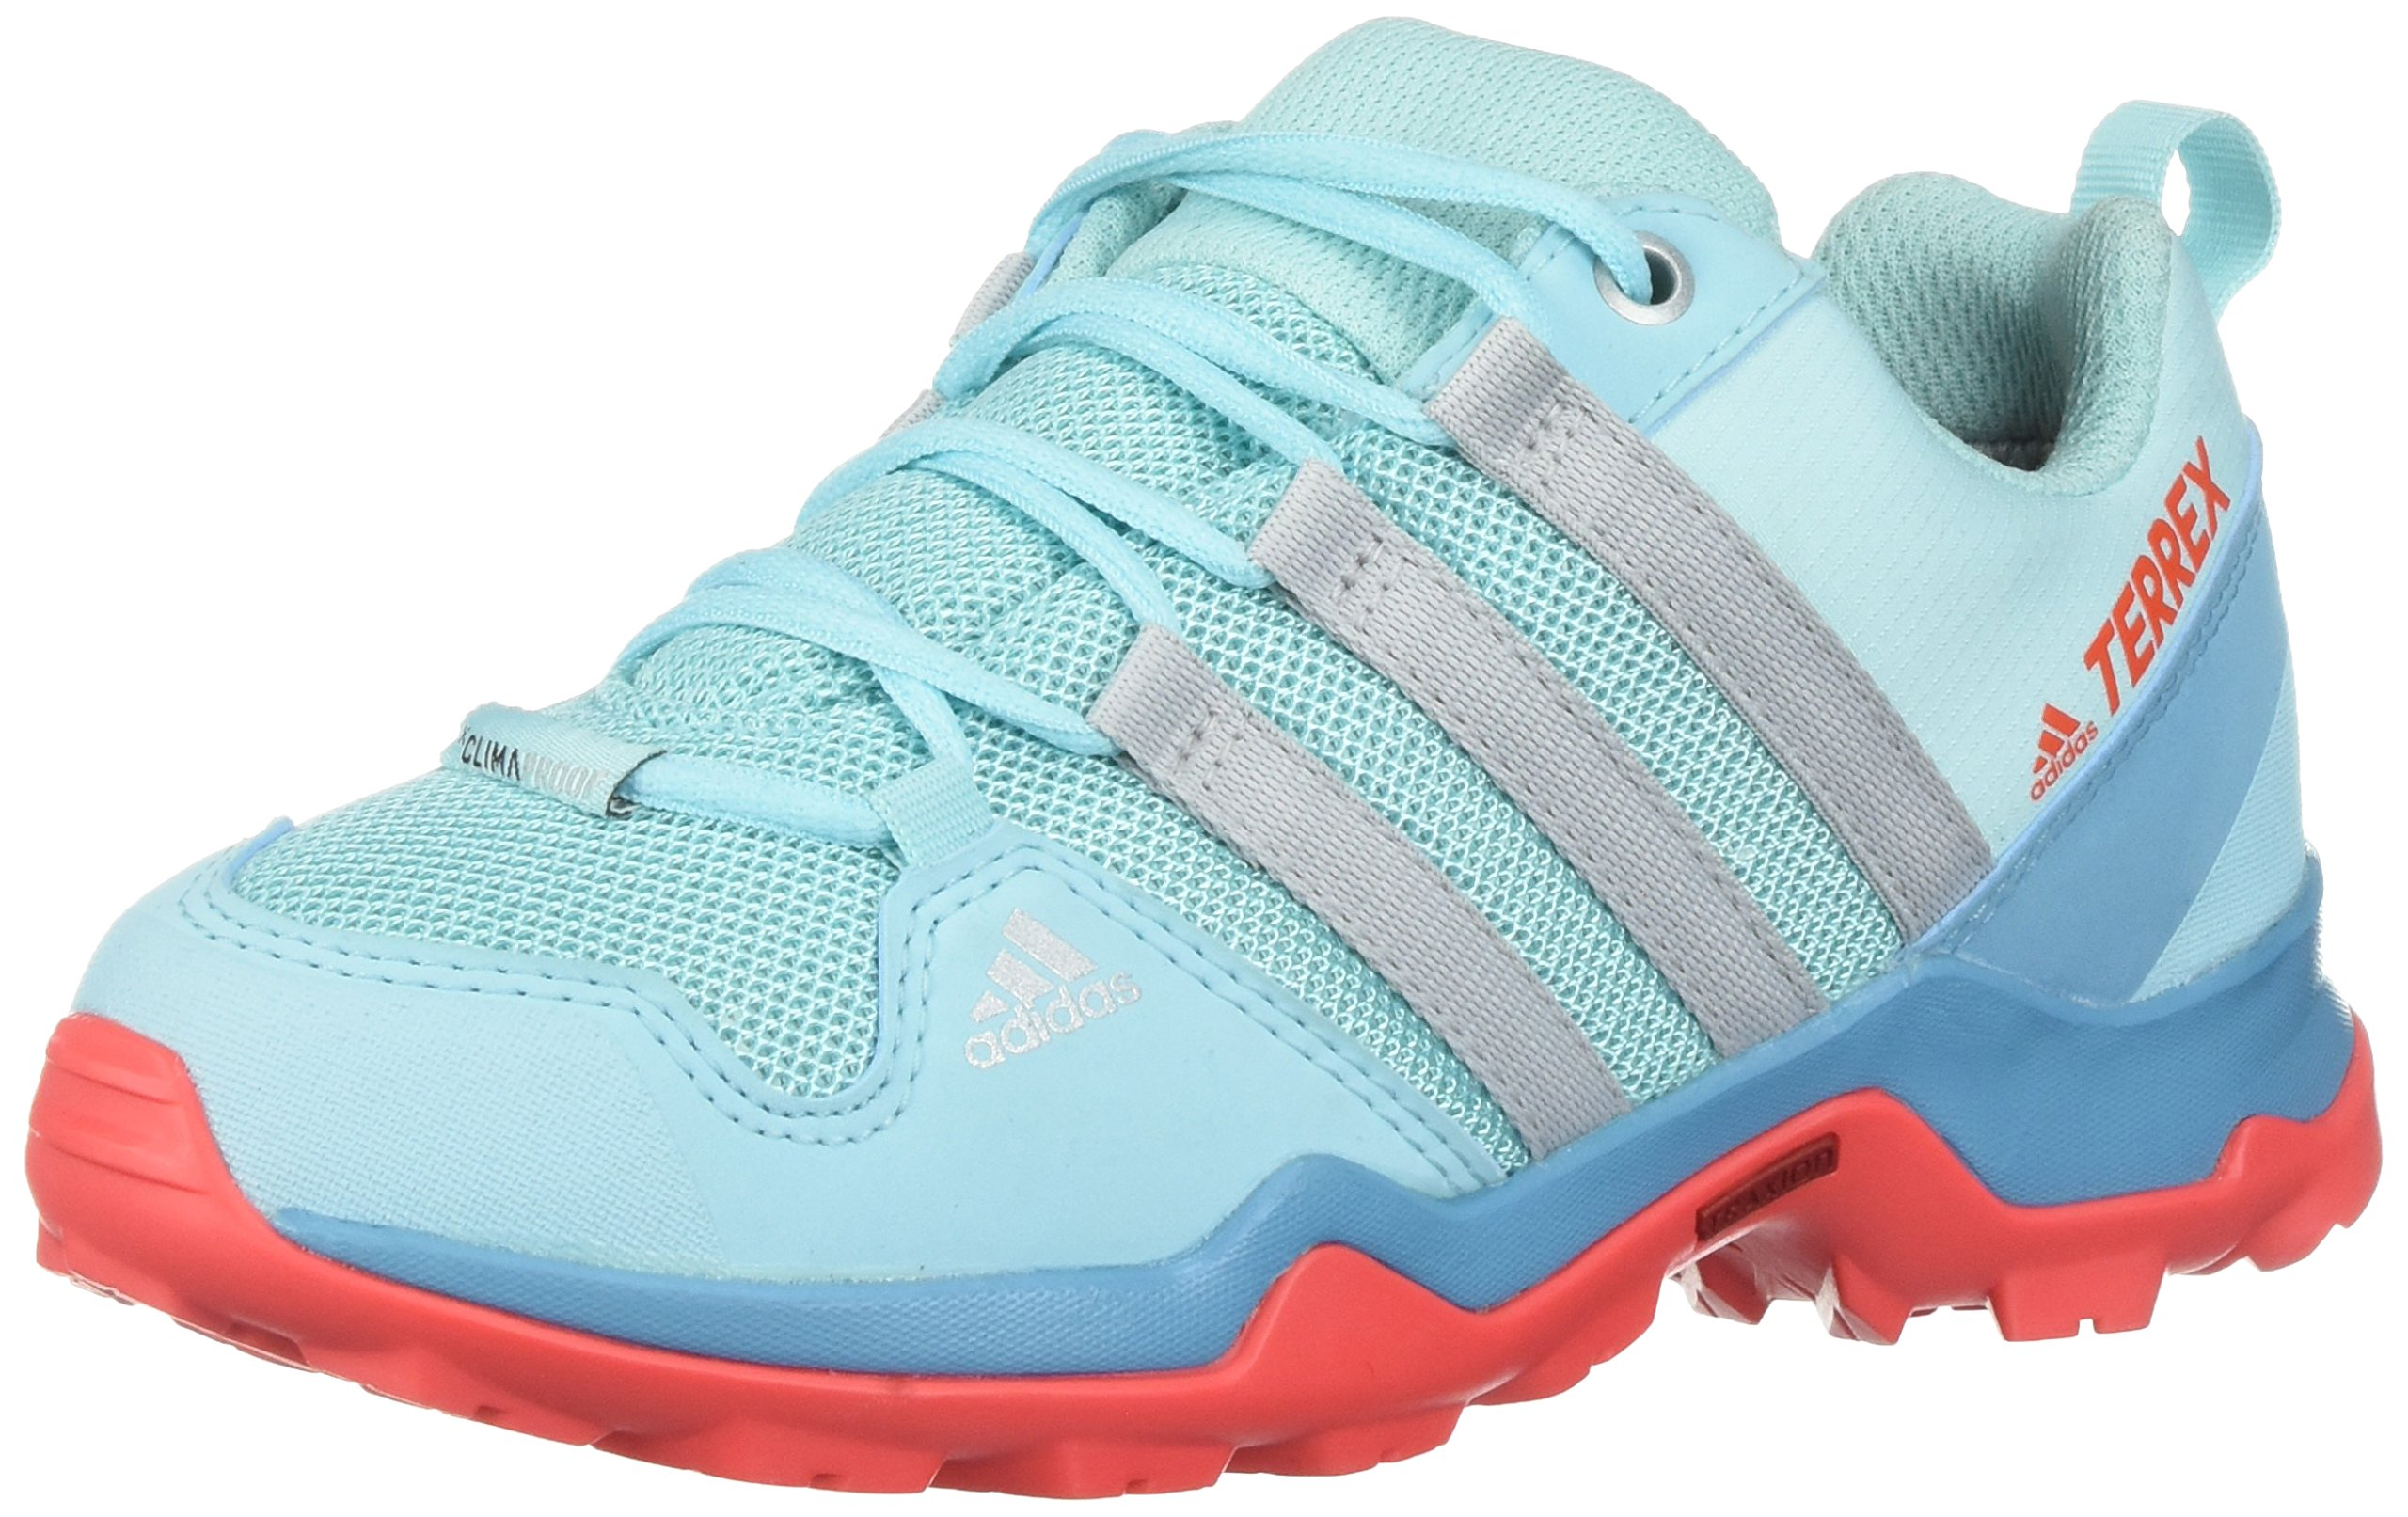 adidas outdoor Unisex Terrex AX2R CP K Hiking Shoe, Vapour Blue/Grey Two/Easy Coral, 6 Child US Big Kid